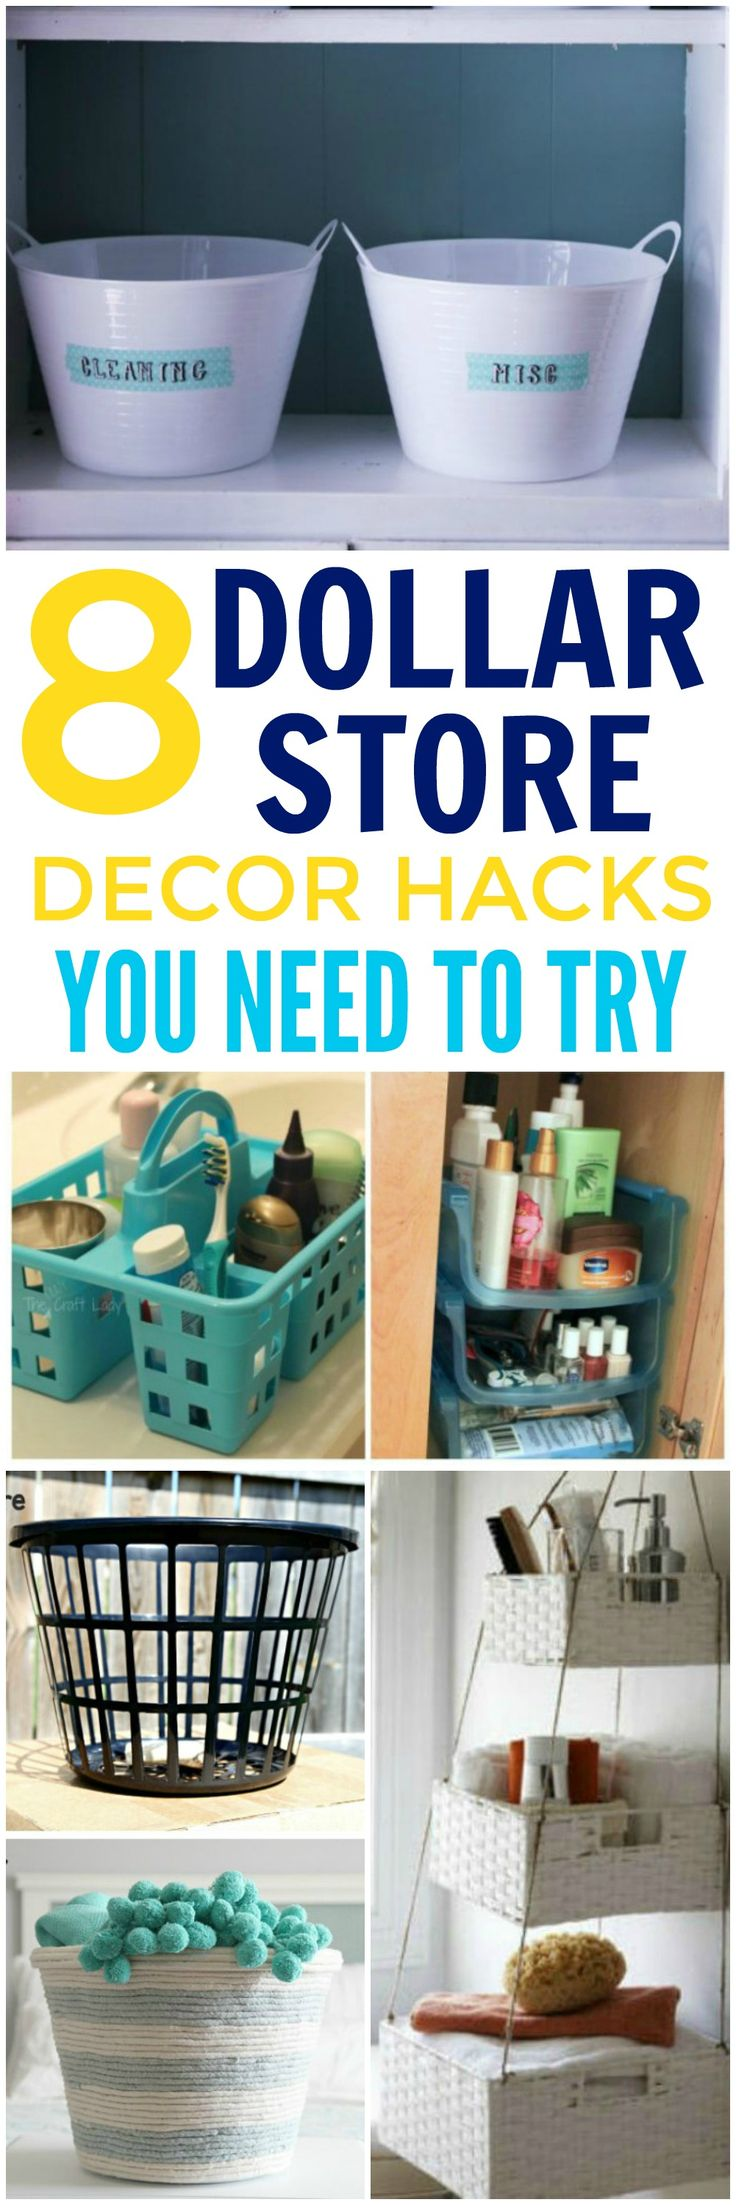 dollar store decorating hacks 211 best dollar organizing tips decor amp hacks 10802